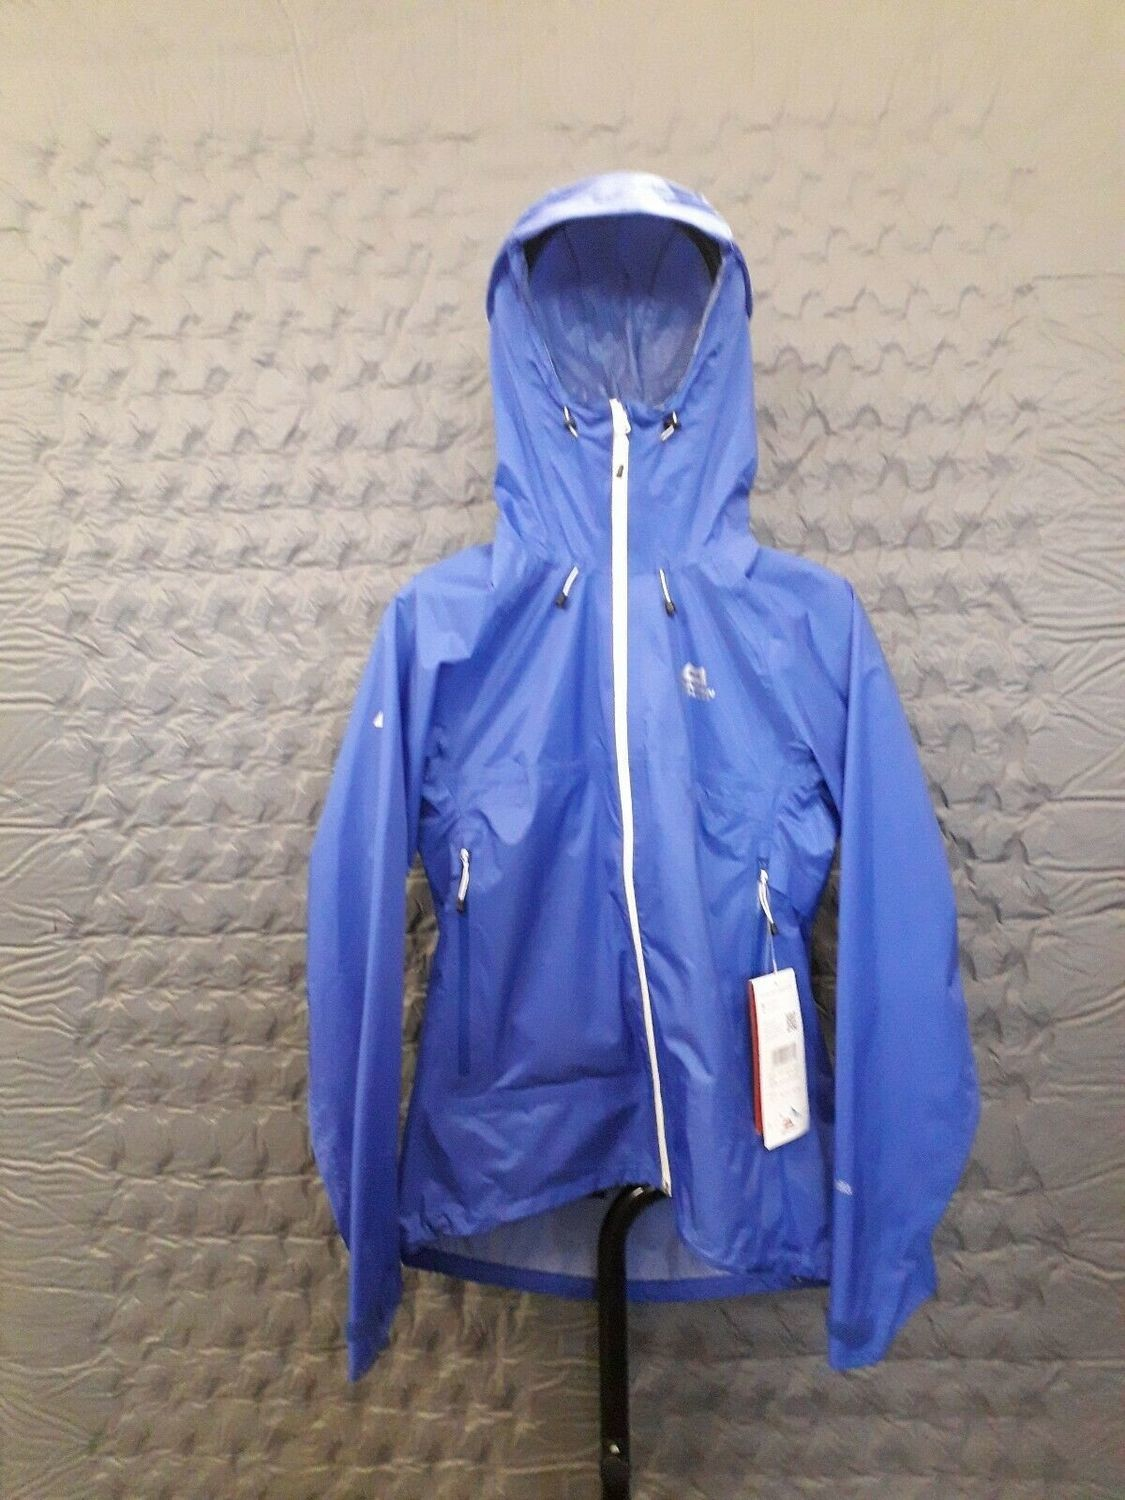 MOUNTAIN EQUIPMENT WOMEN'S VECTOR WATERPROOF JACKET CELESTIAL BLUE SIZE 12